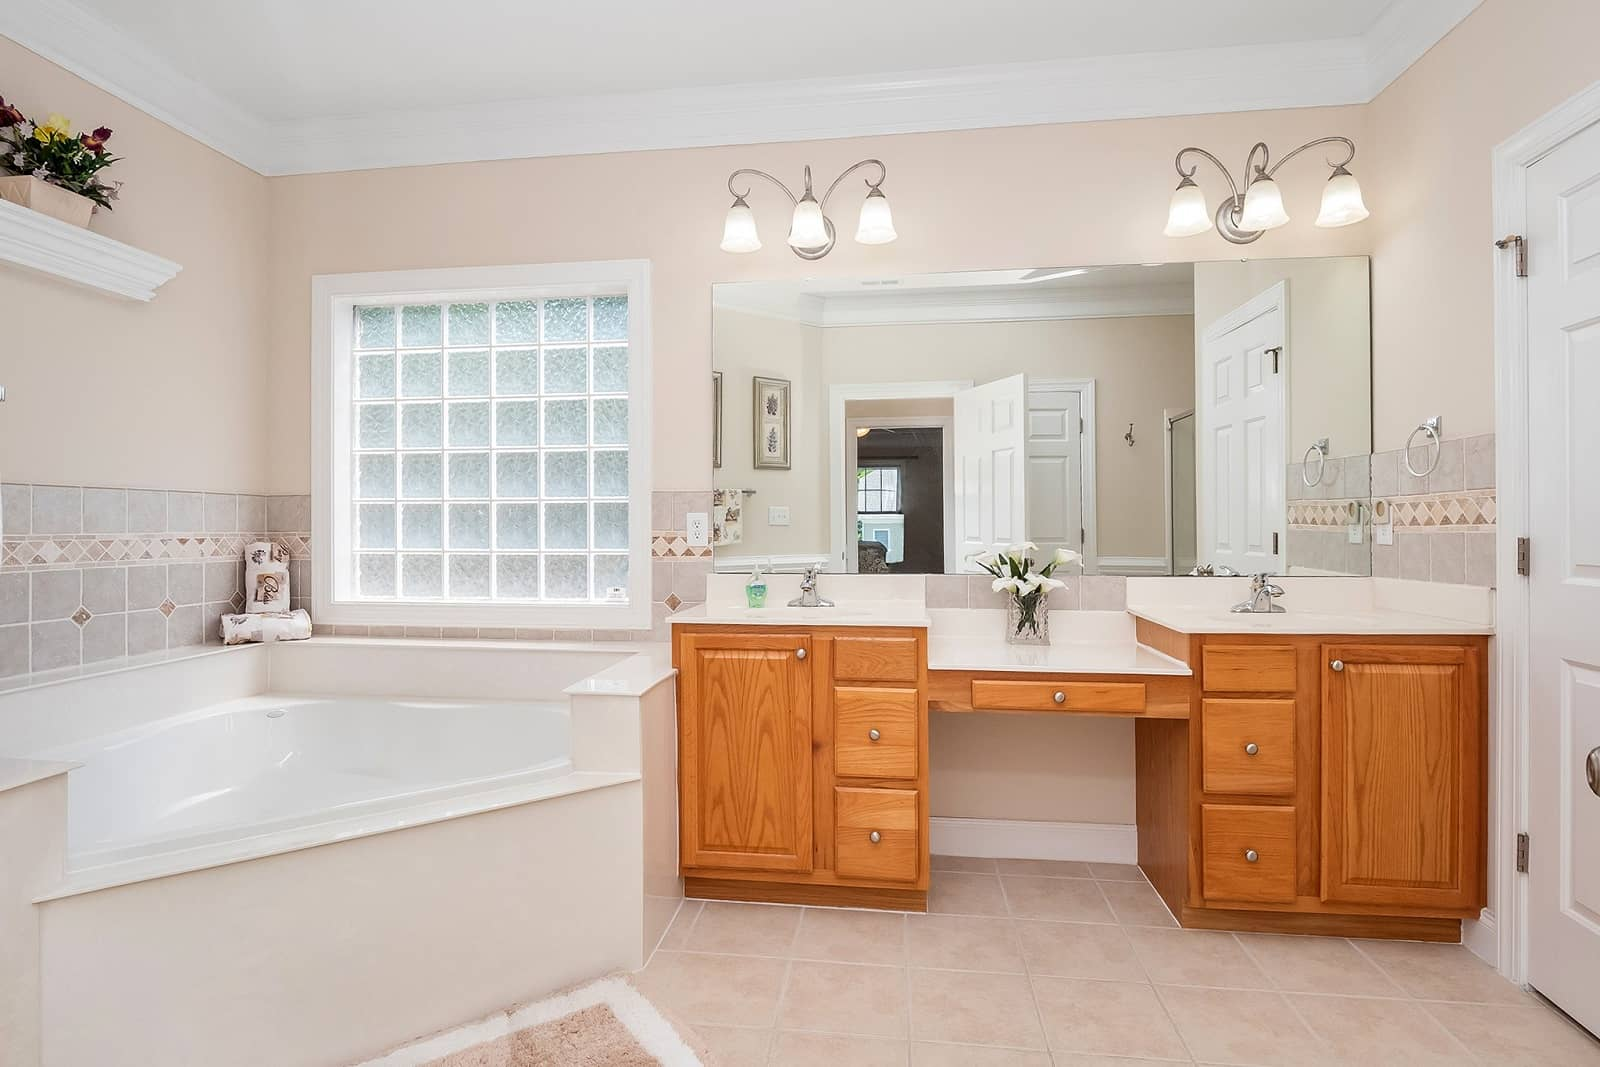 Real Estate Photography in Cary - NC - USA - Bathroom View